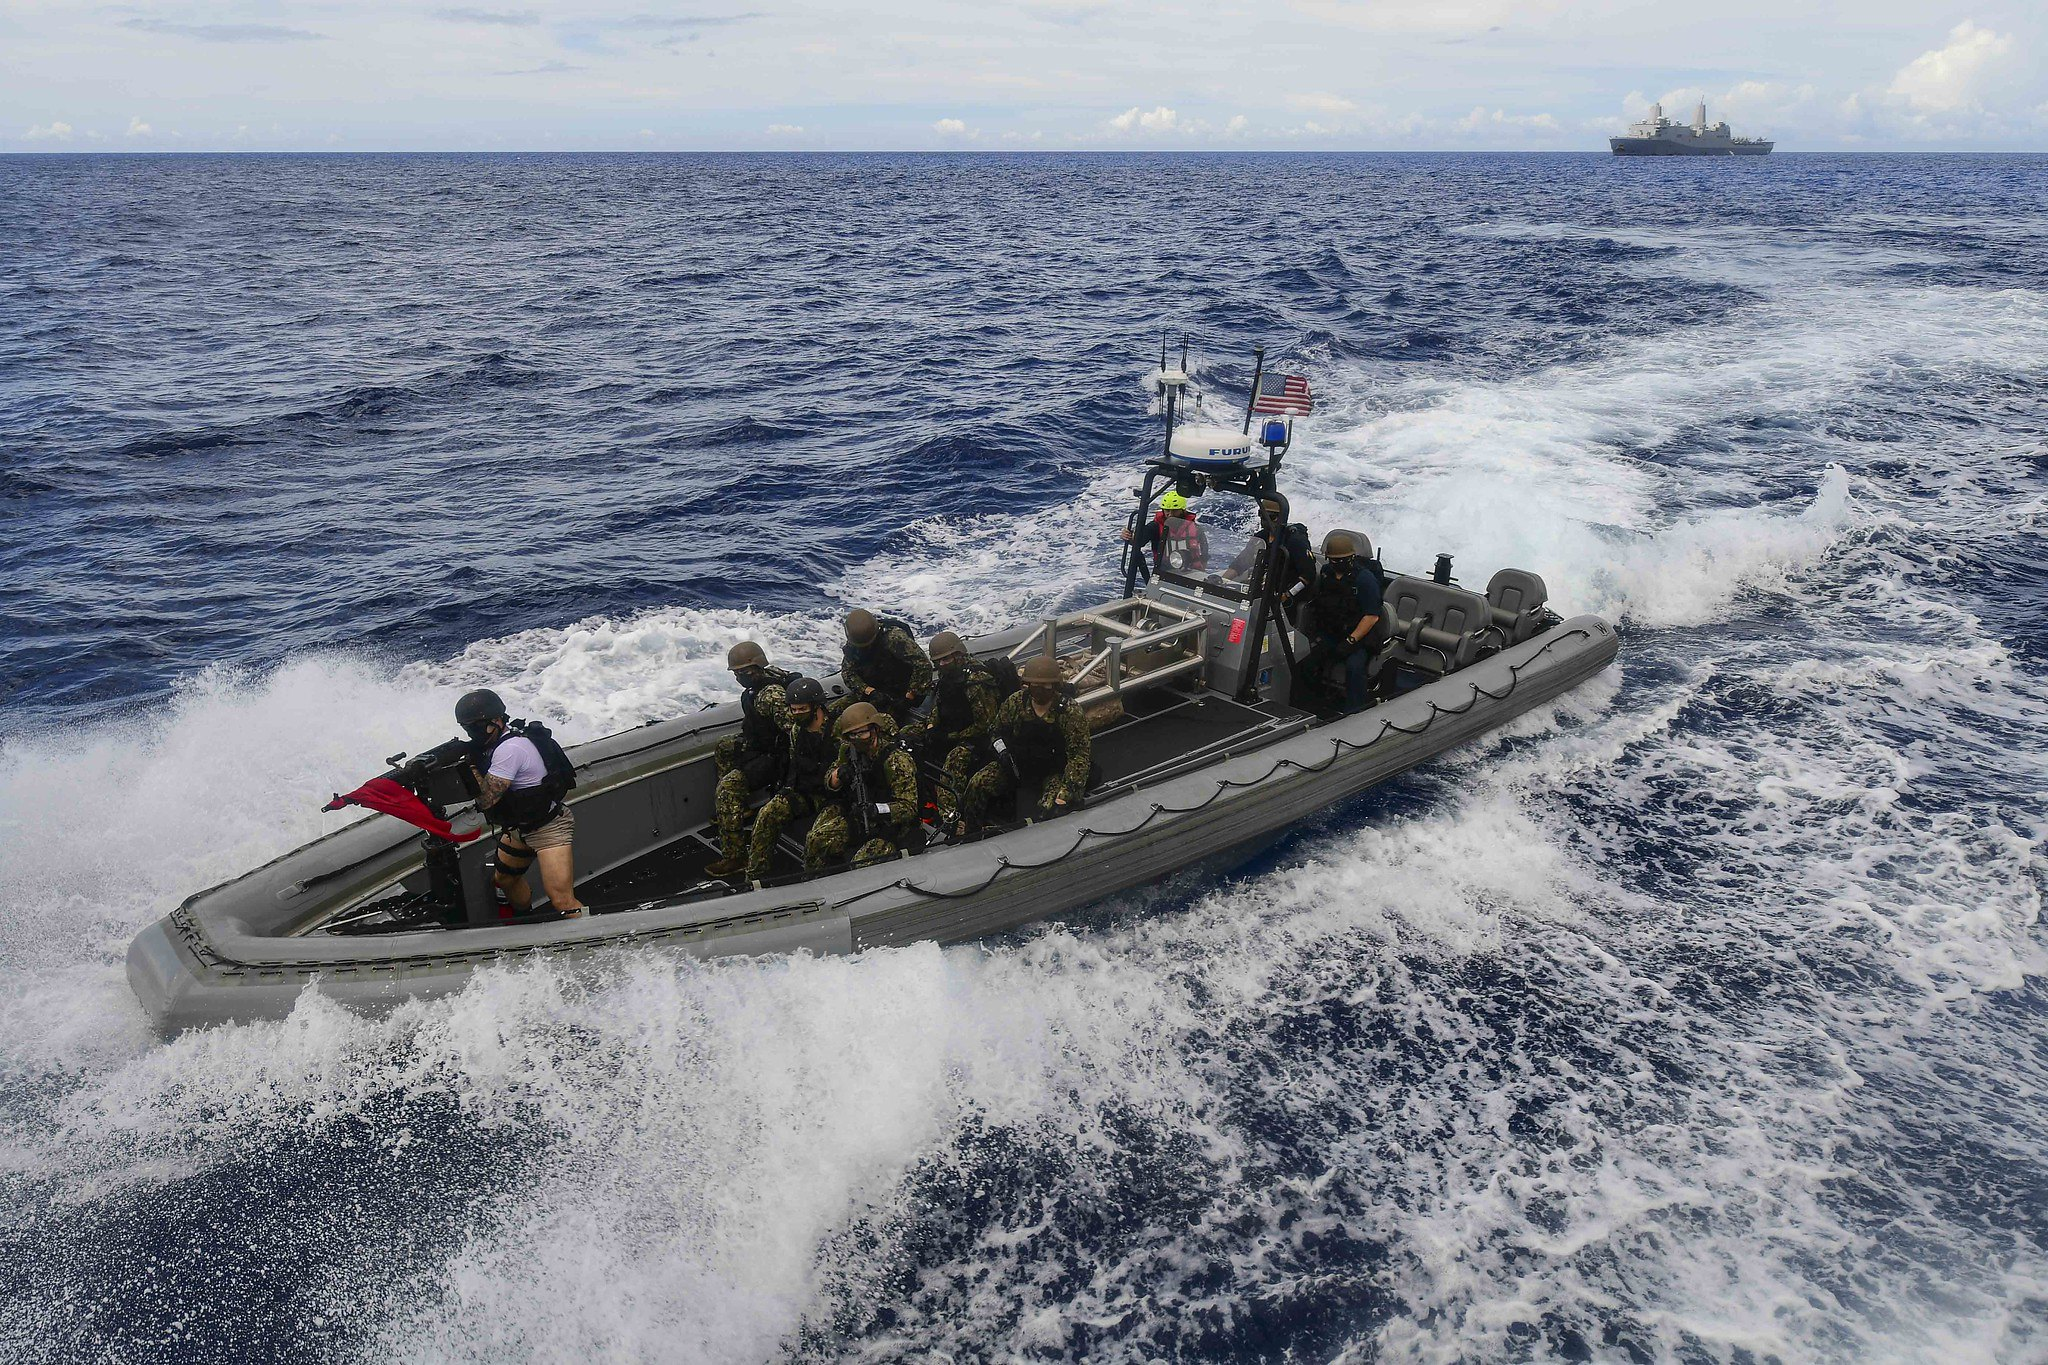 A visit, board, search and seizure team from the amphibious transport dock ship USS New Orleans (LPD 18) approaches a simulated suspect vessel during a training exercise Sept. 16, 2020, in the Philippine Sea. (MC2 Kelby Sanders/Navy)